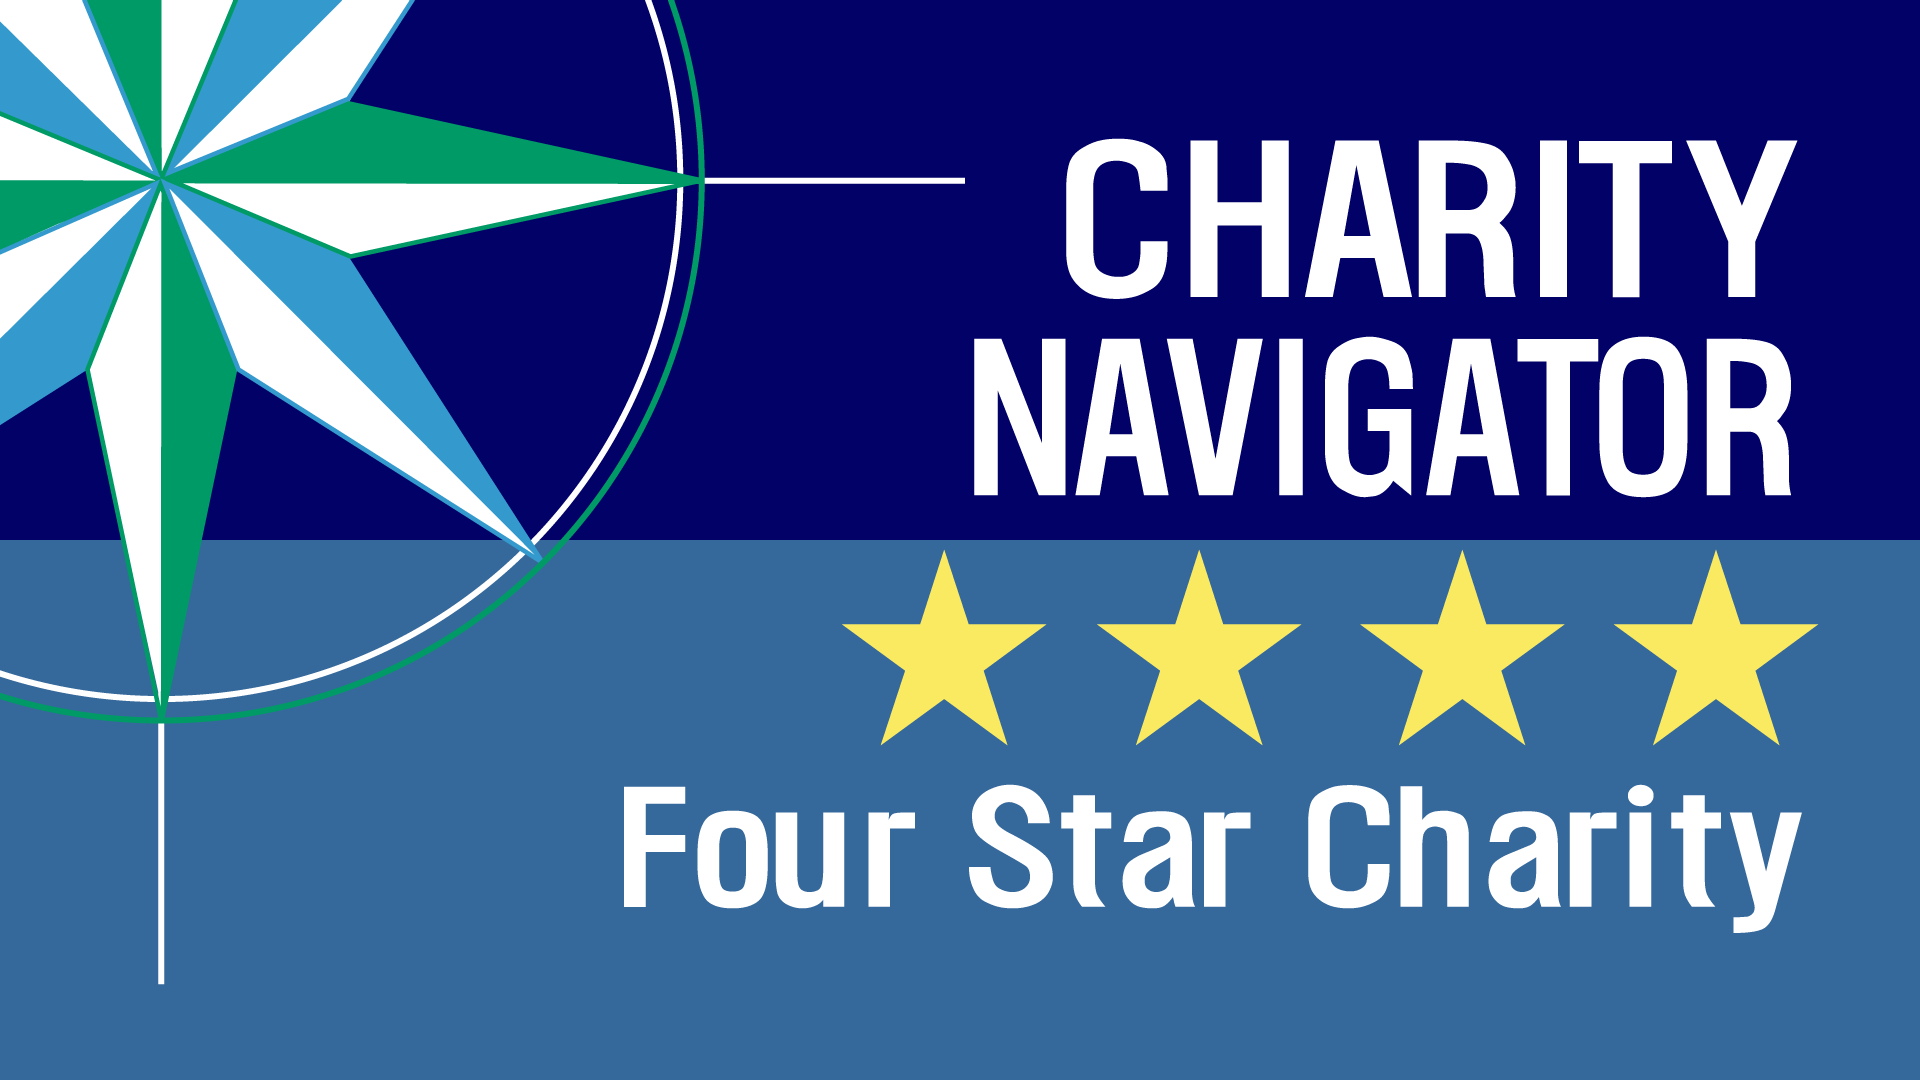 image of four star charity navigator logo